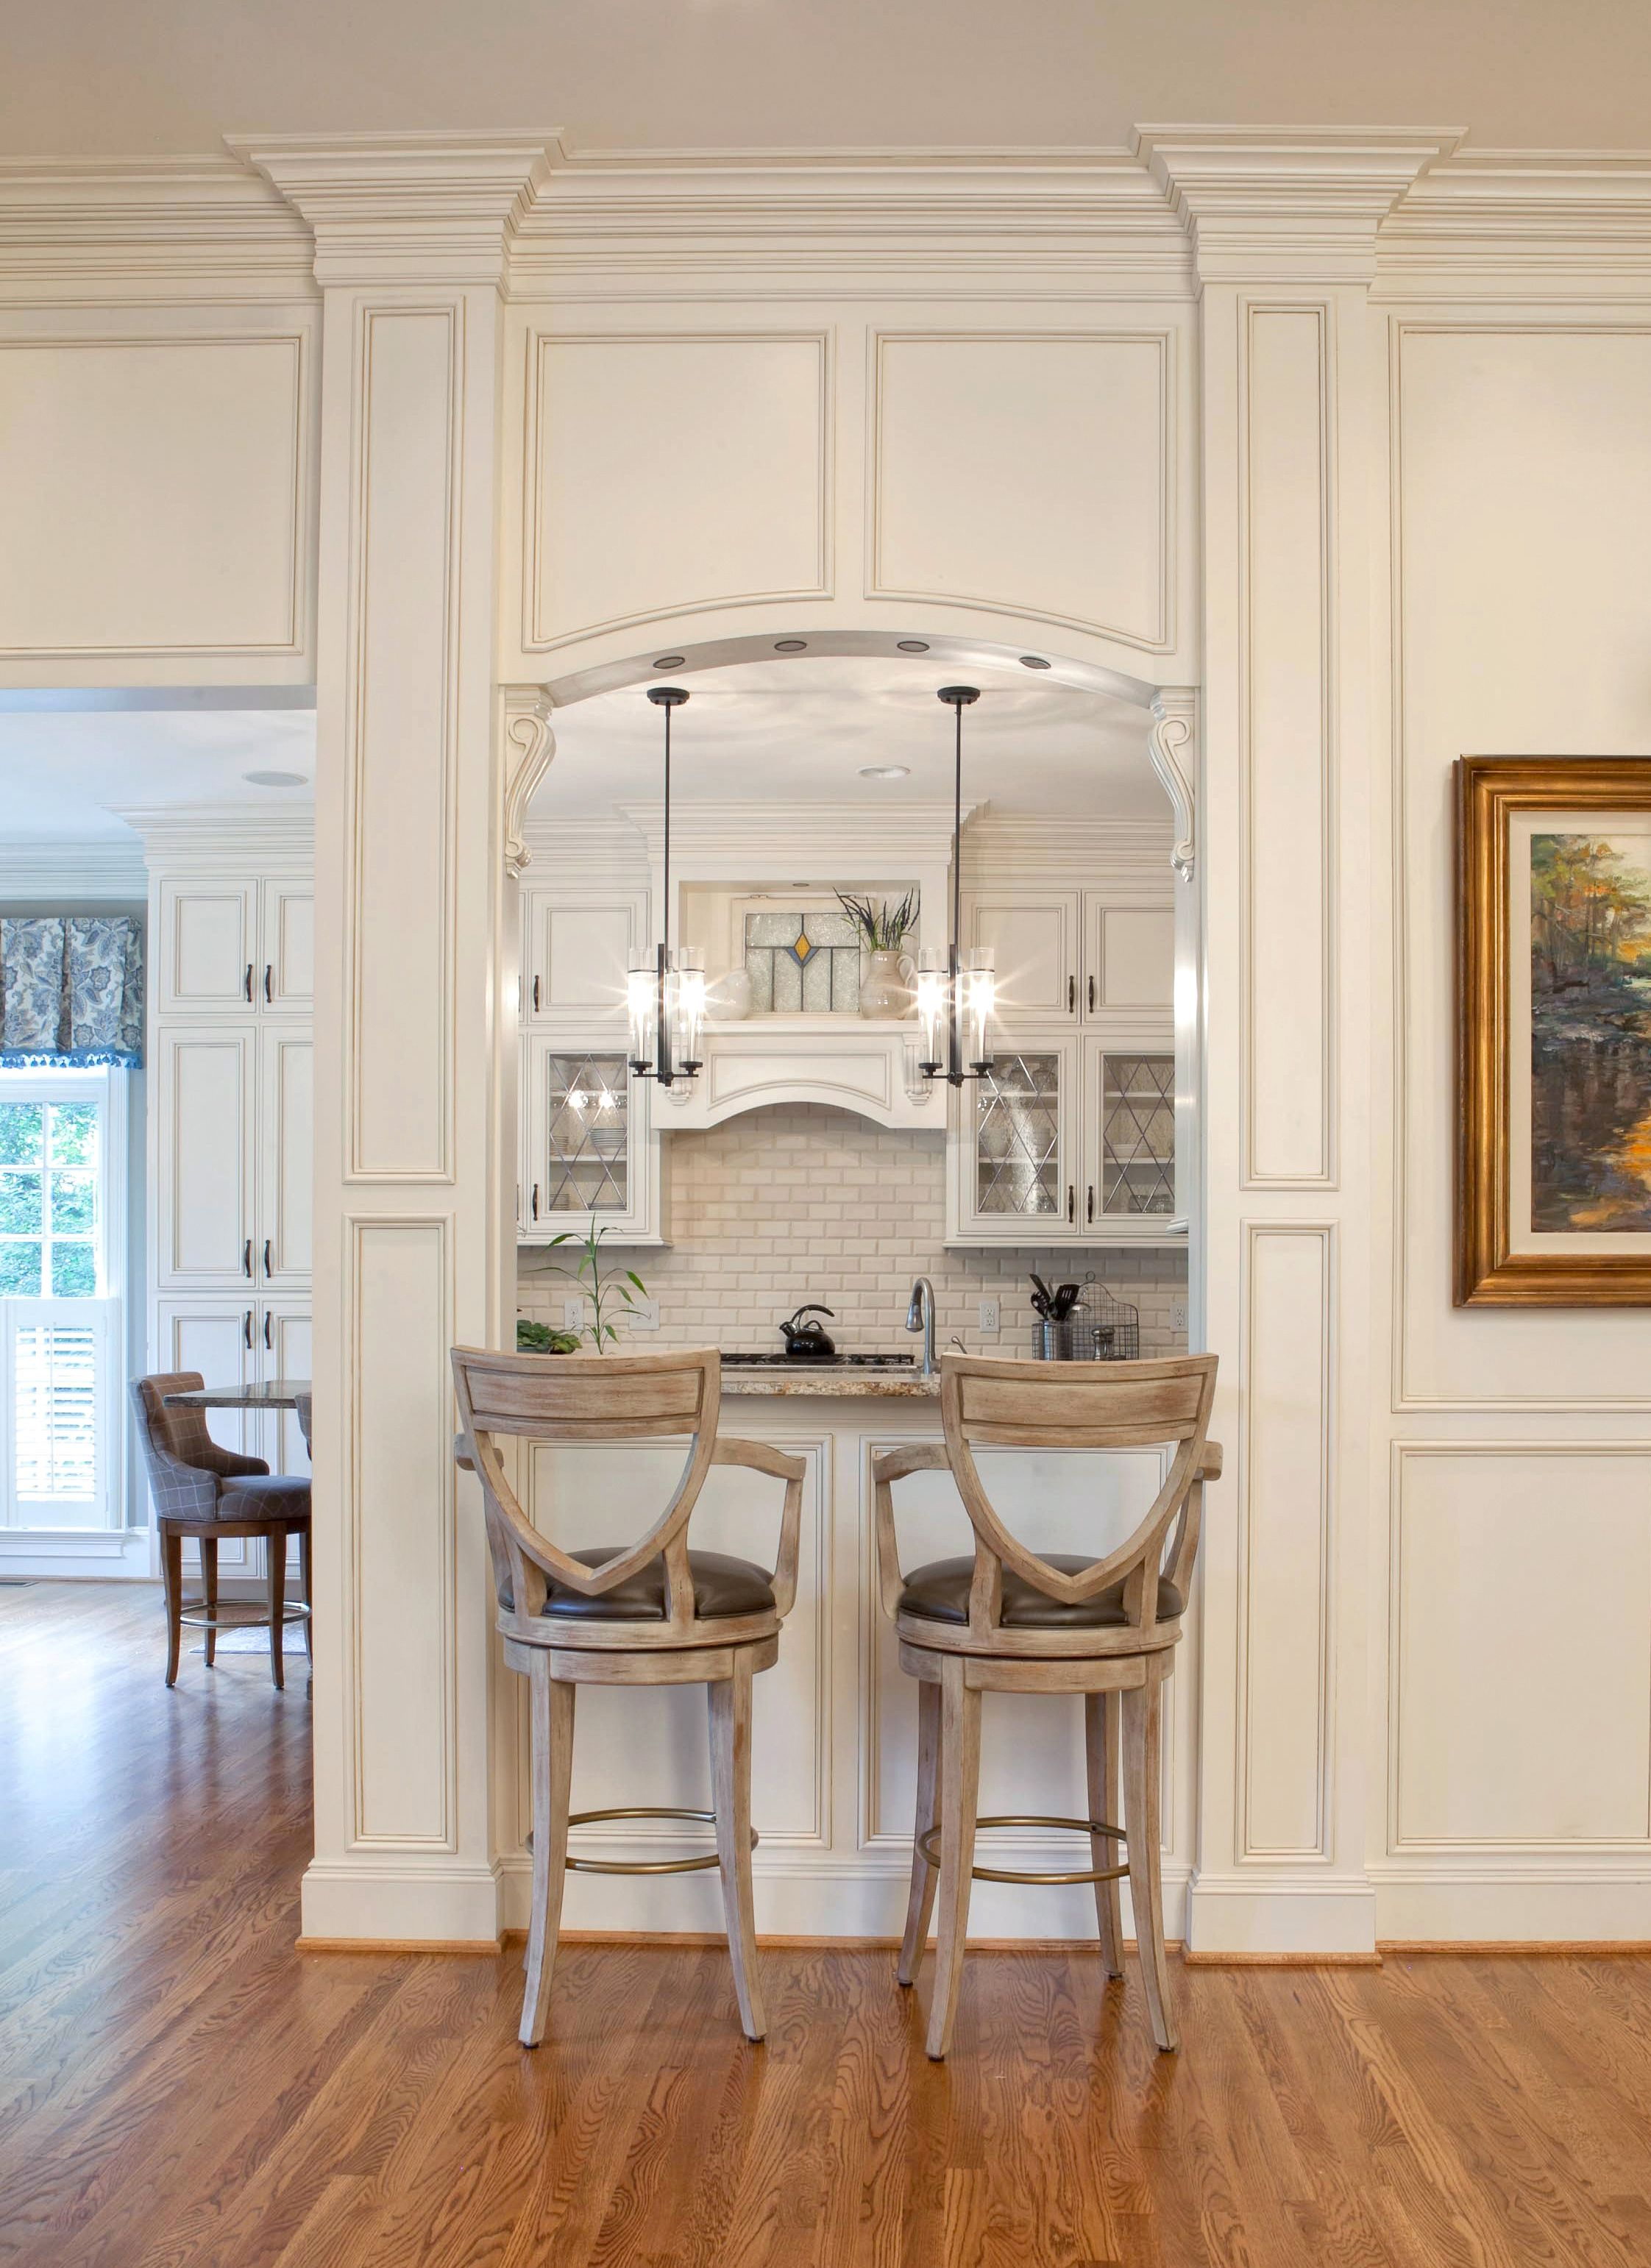 Kitchen, Custom Kitchen, Kitchen Design. Kitchen nook. Let Walker Woodworking build the kitchen of your dreams. Give us a call @ 704-434-0823 or visit us @ www.walker-woodworking.com